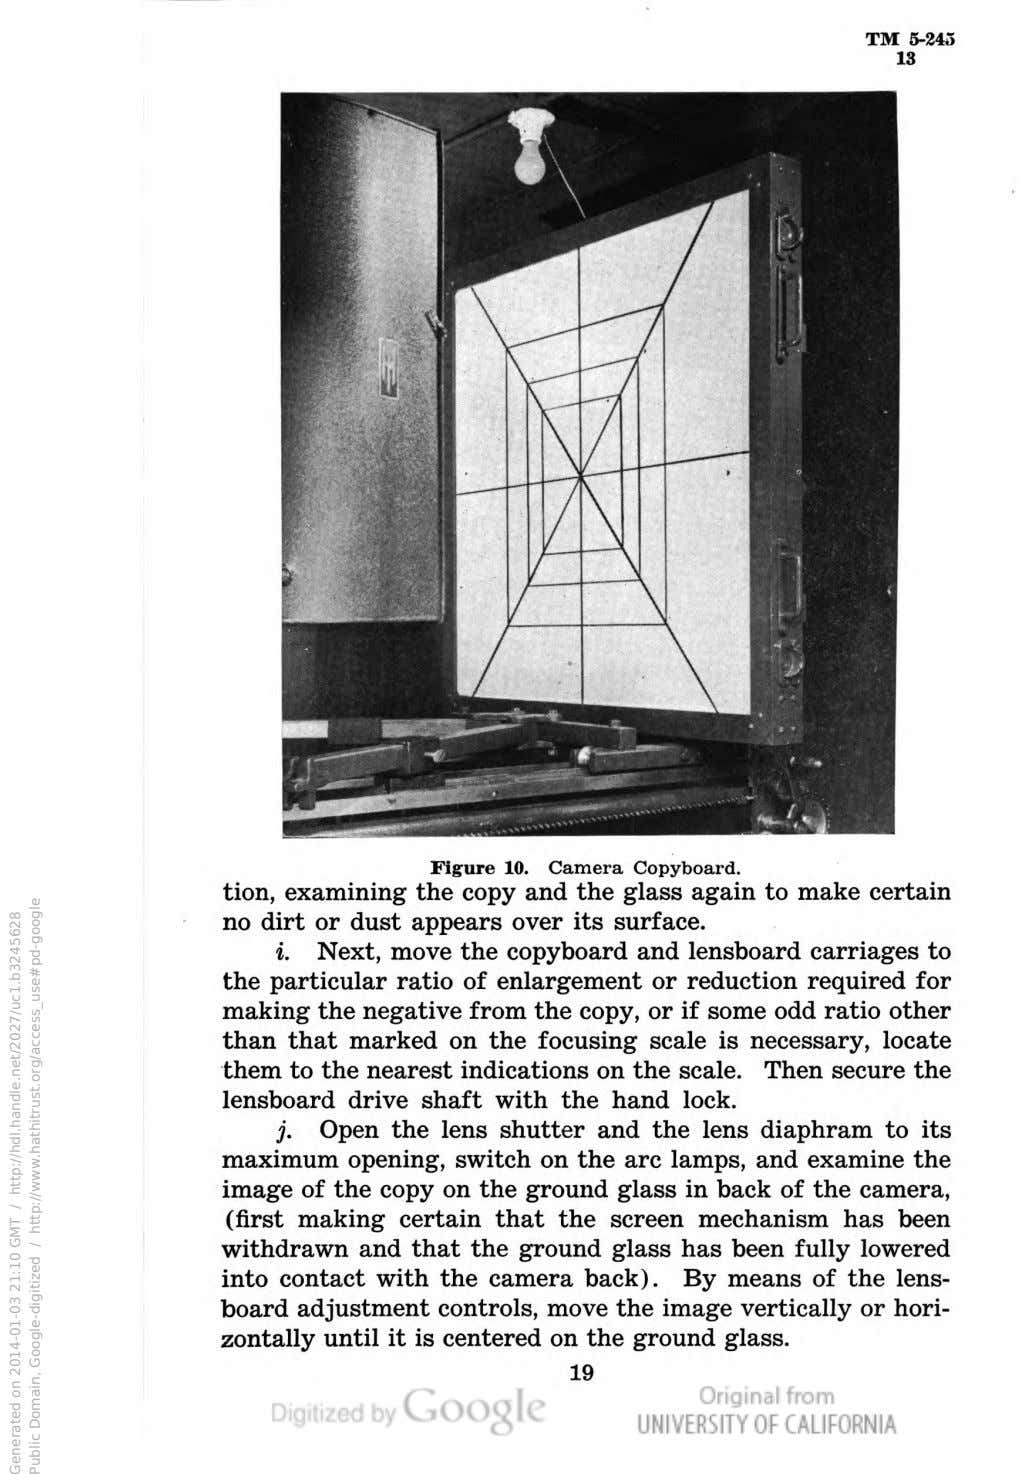 TM 5-245 13 Figure 10. Camera Copyboard. tion, examining the copy and the glass again to